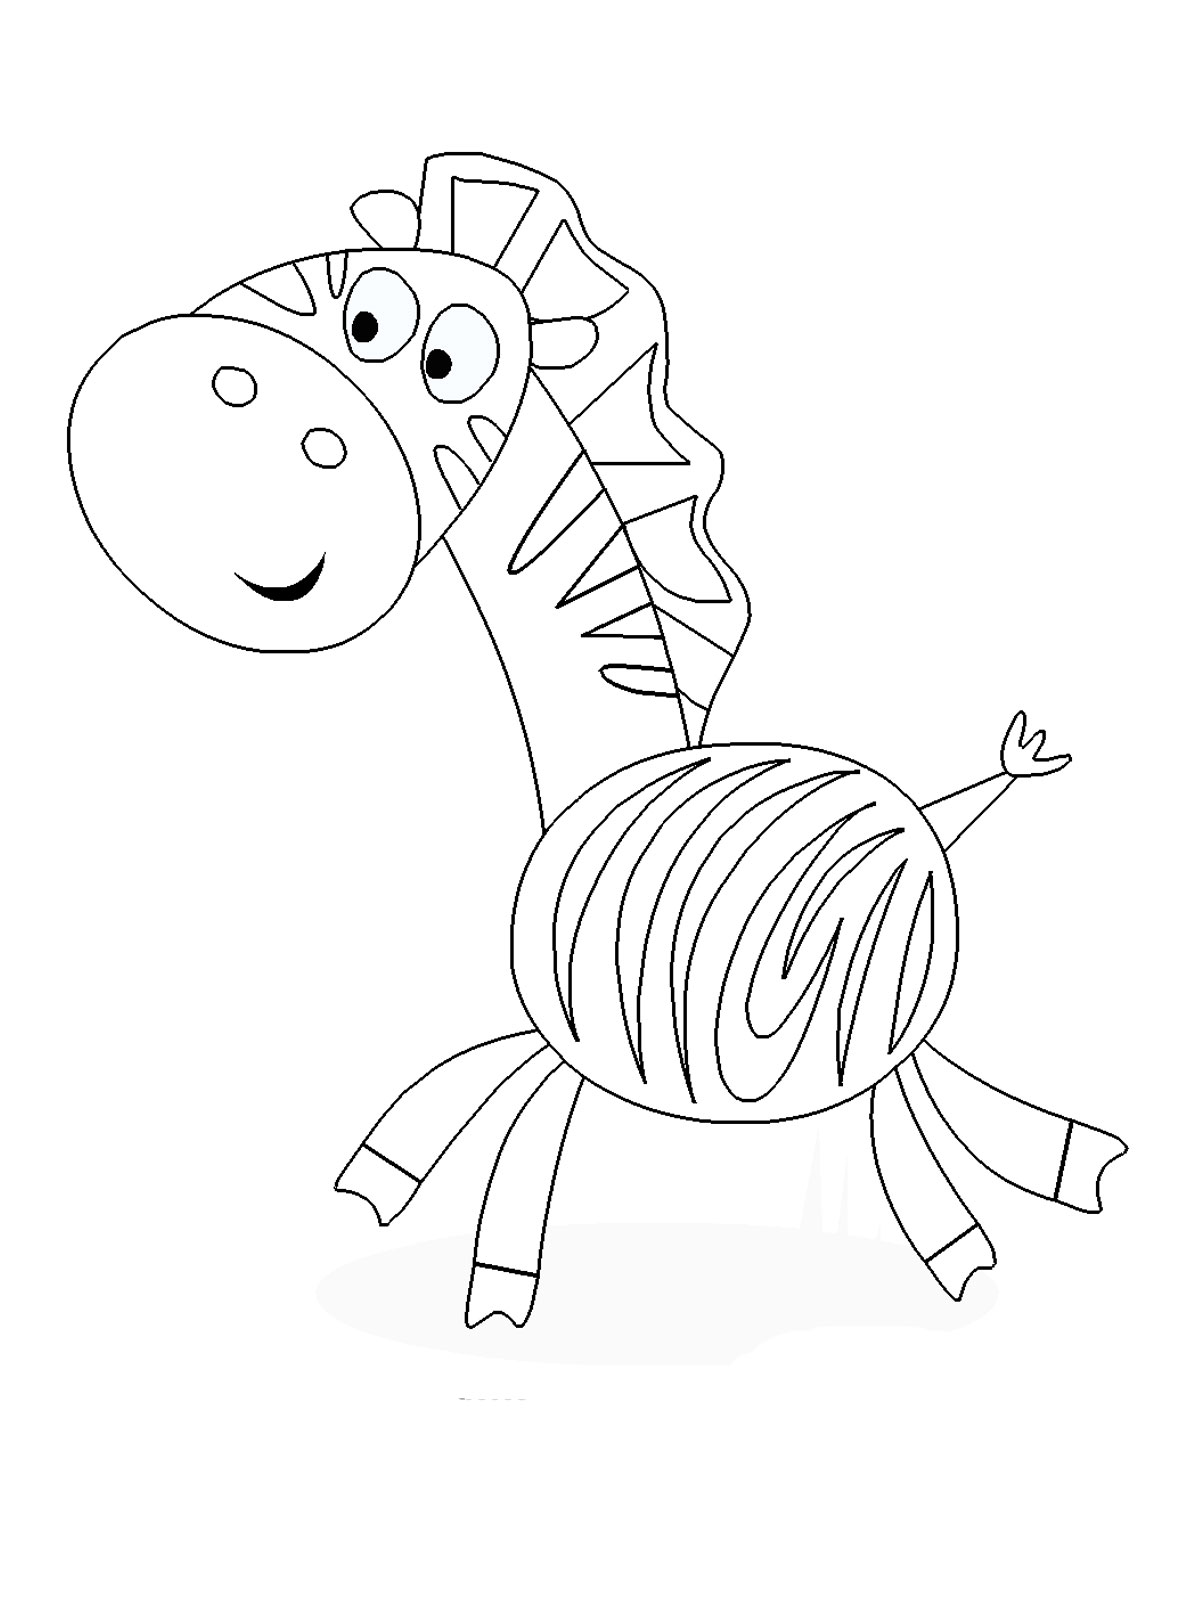 colouring pages to print free free printable pinocchio coloring pages for kids colouring to pages print free